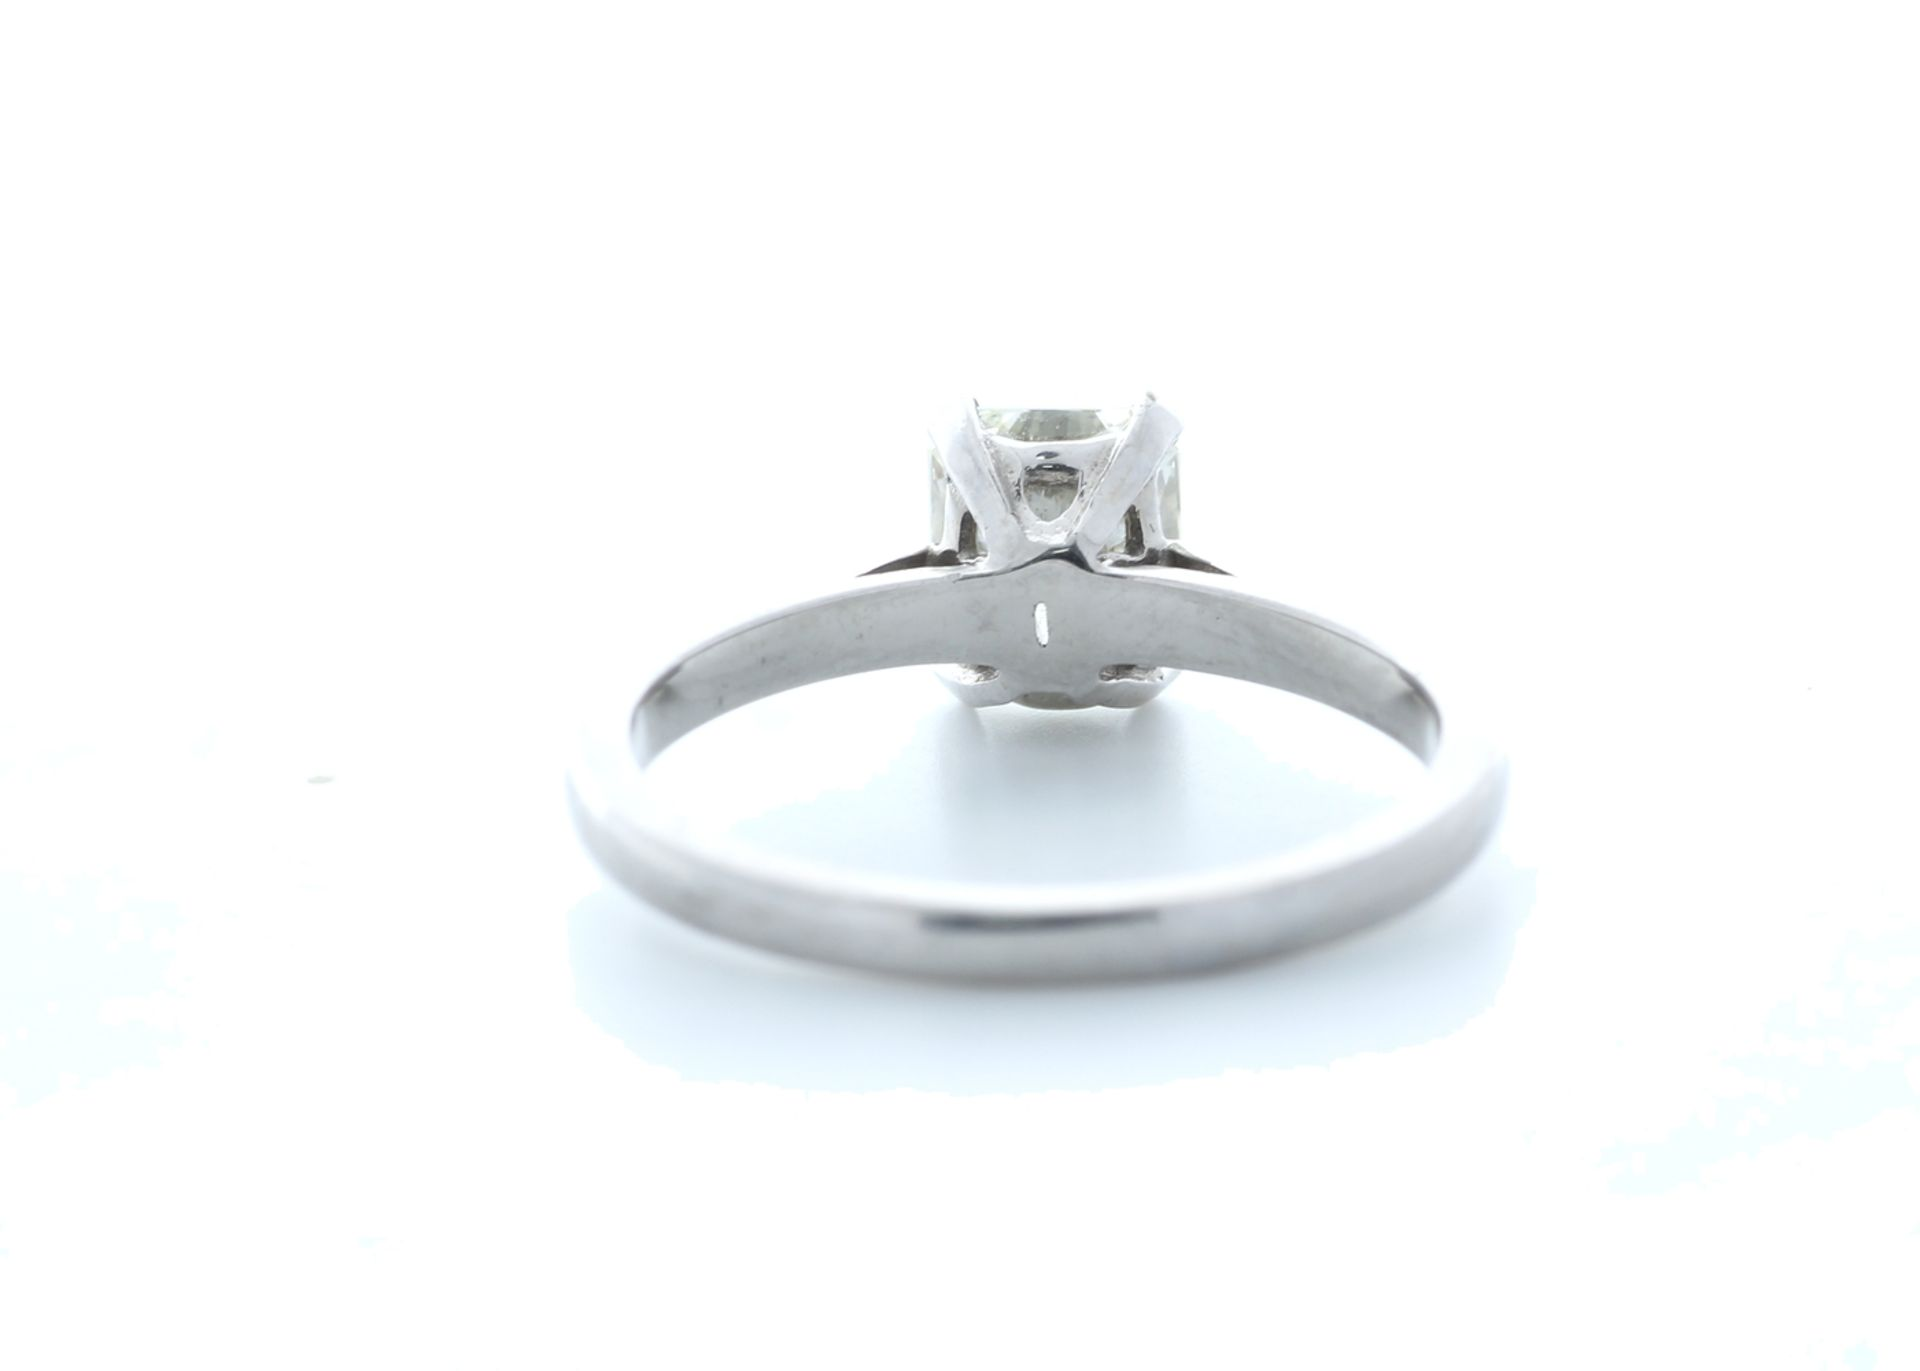 18ct White Gold Radiant Cut Diamond Ring 1.23 (1.08) Carats - Valued by IDI £19,500.00 - 18ct - Image 3 of 5